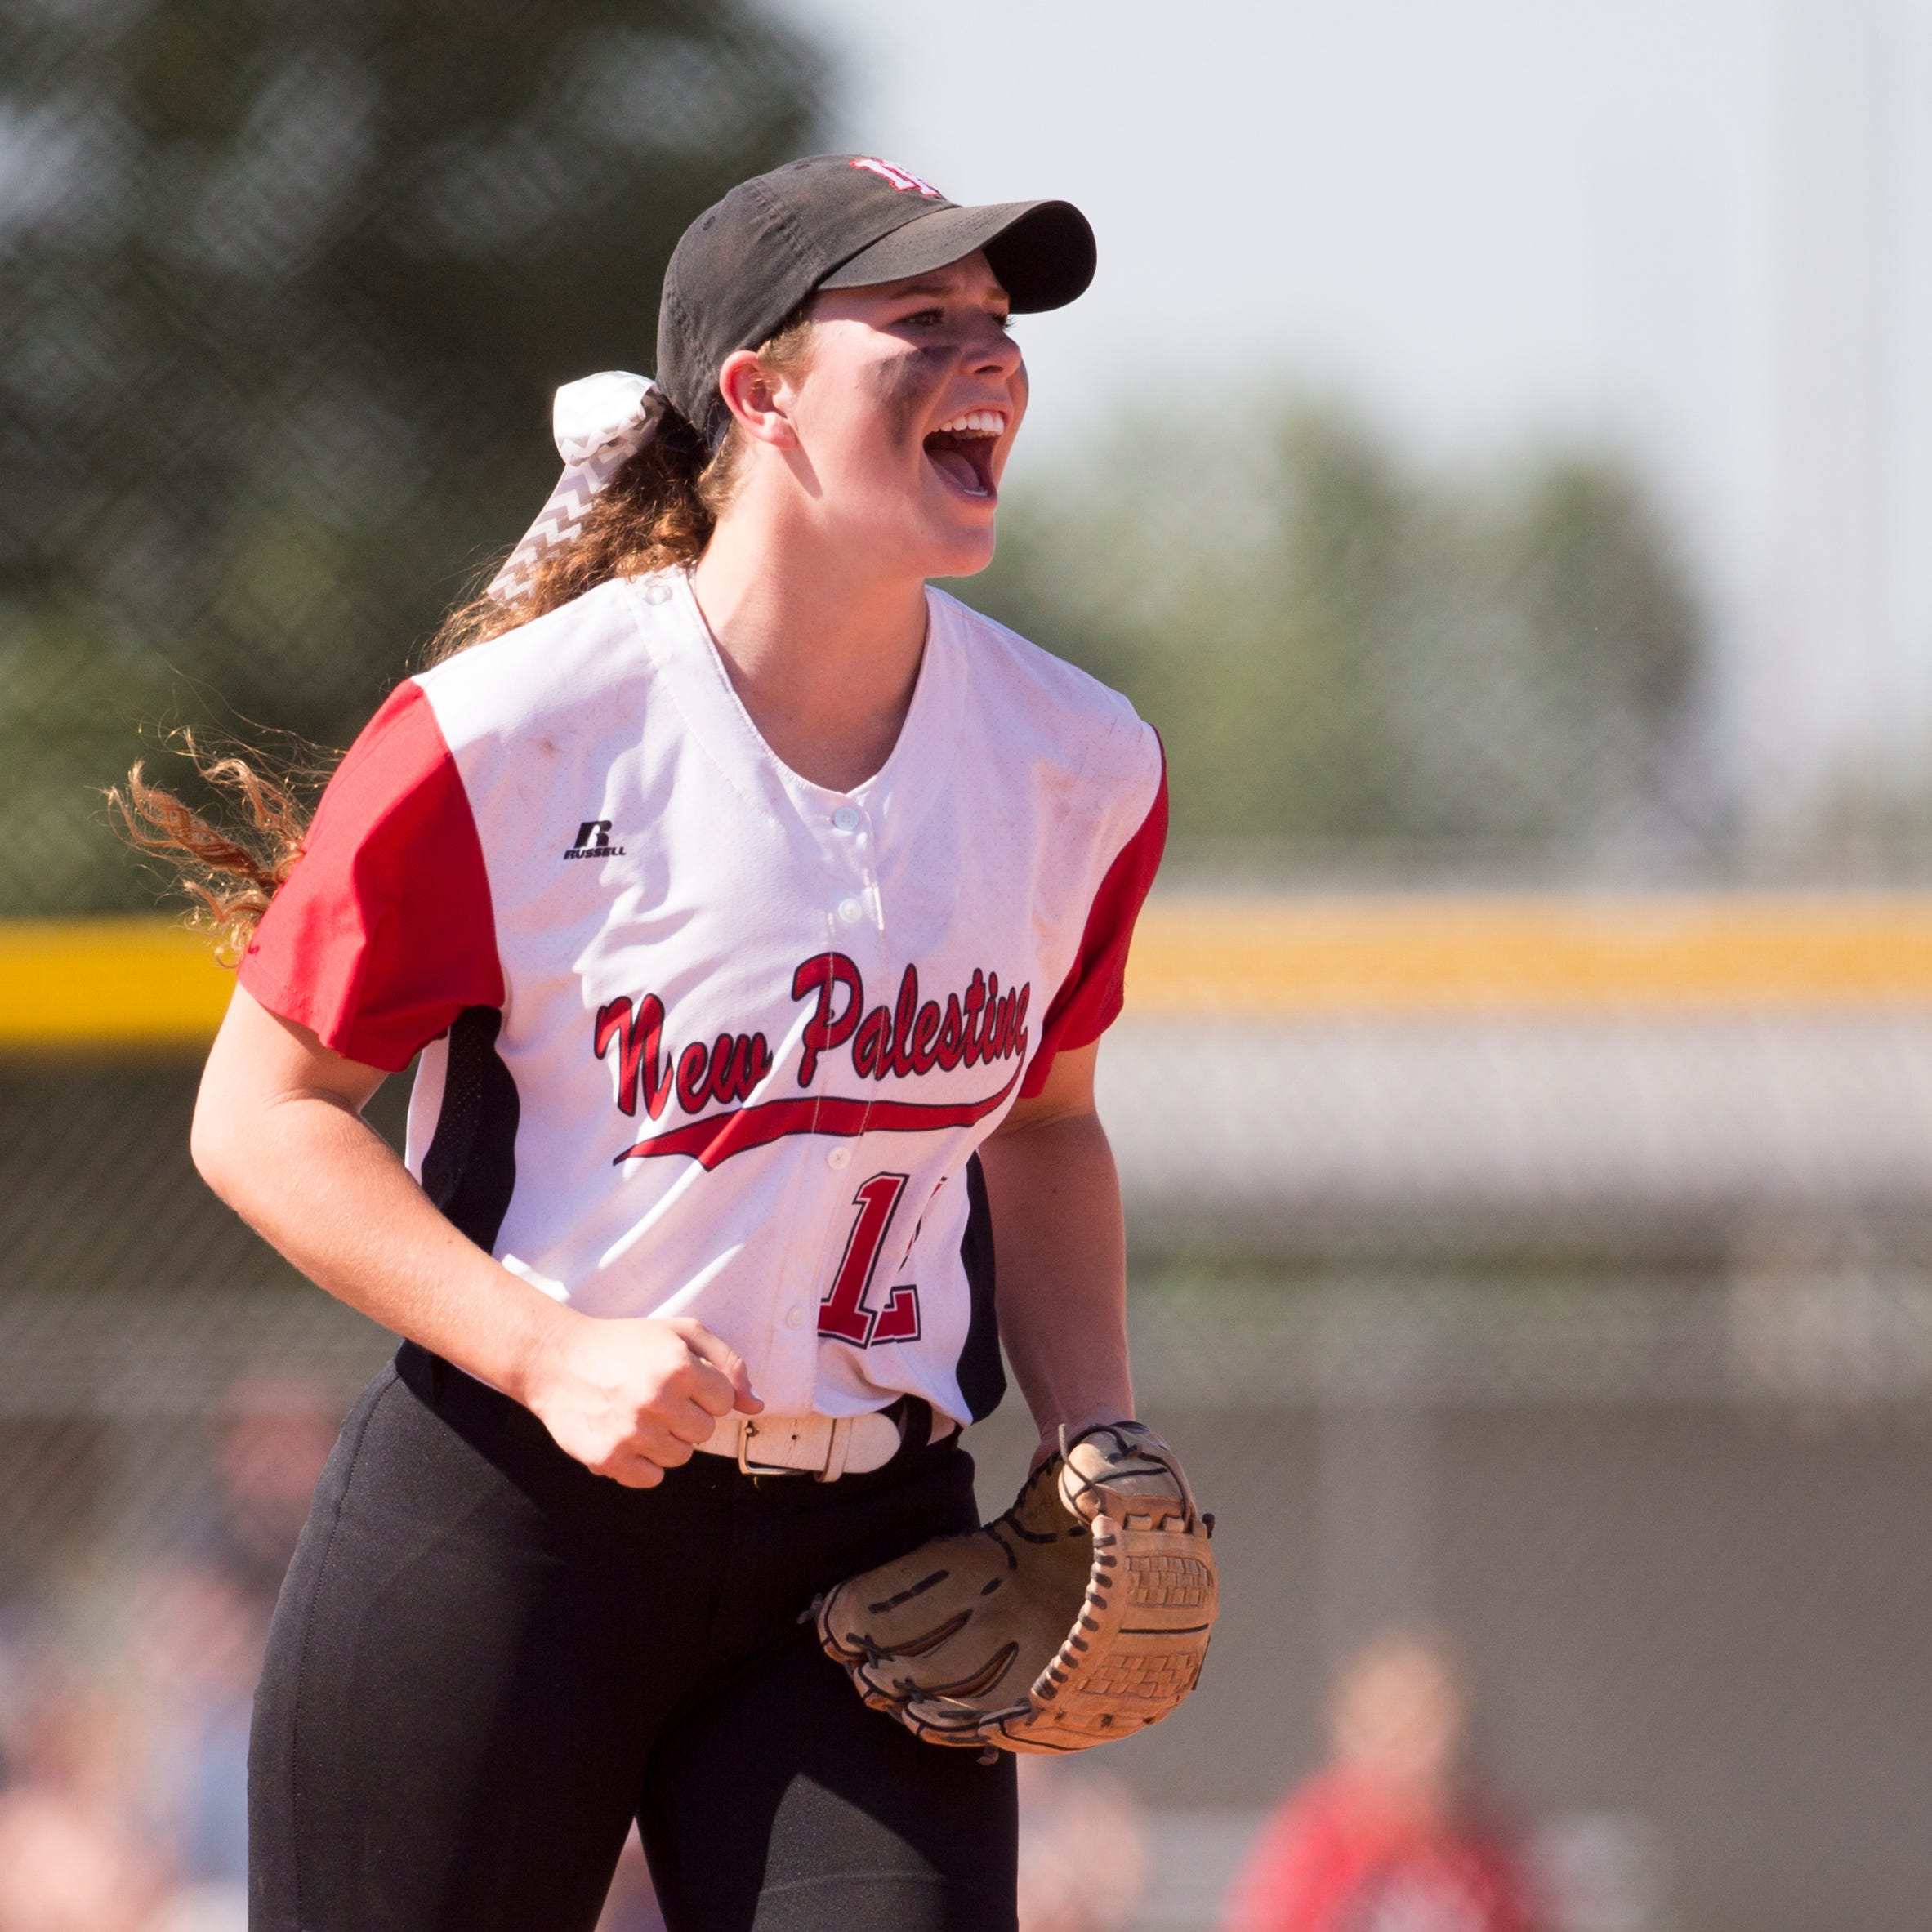 Emily O'Connor of New Palestine High School.